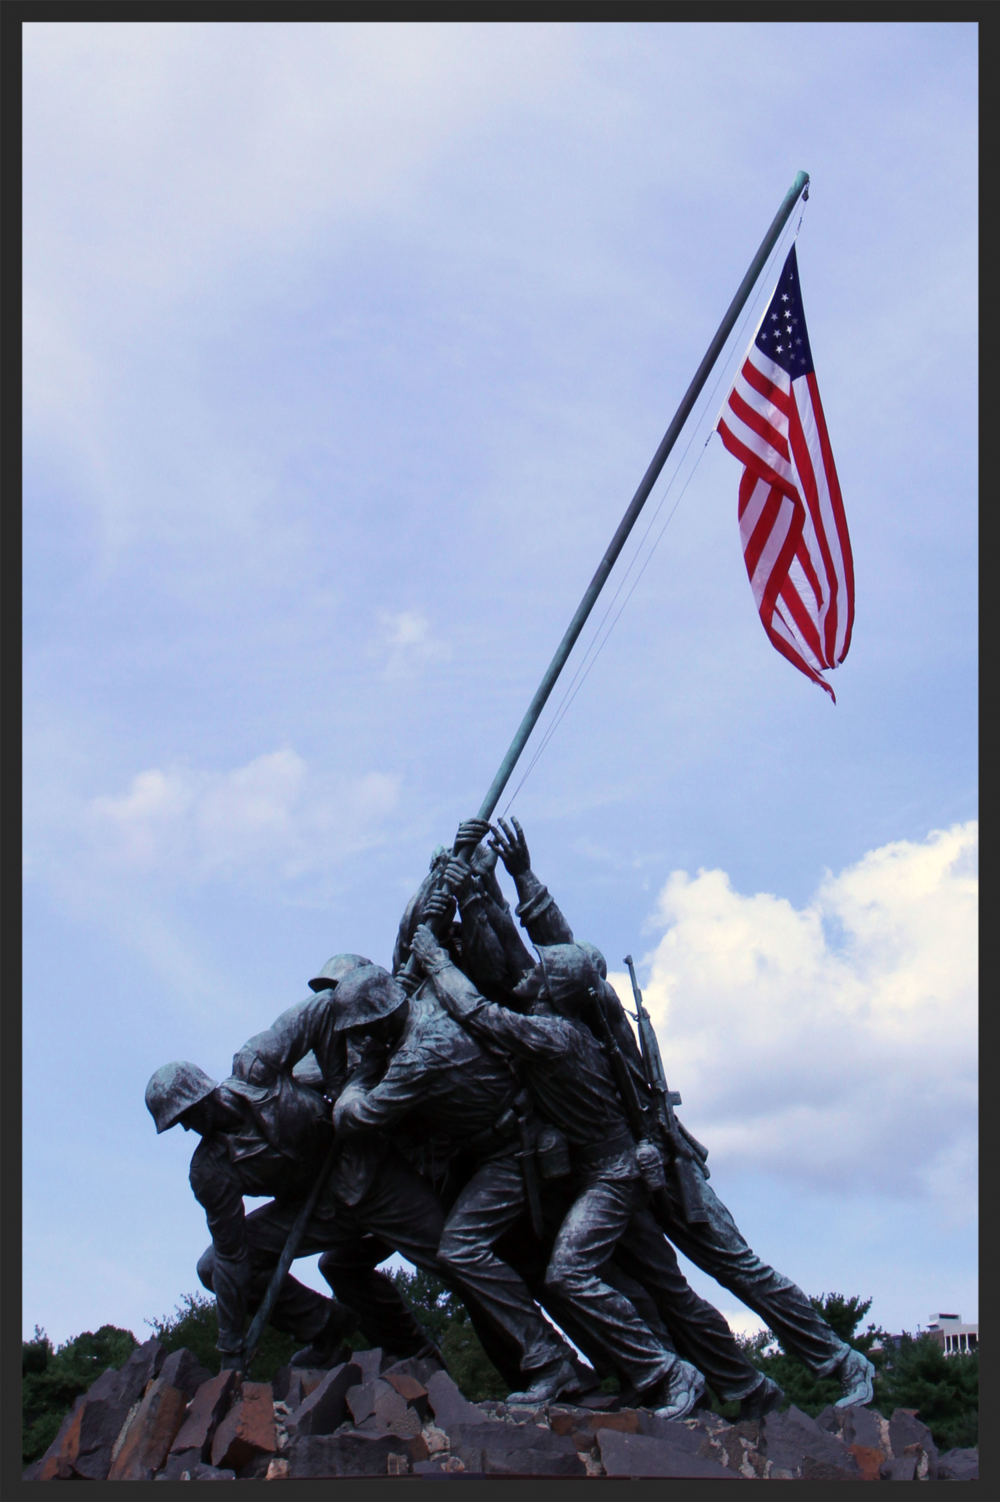 The U.S. Marine Corps War Memorial is an iconic DC area landmark.